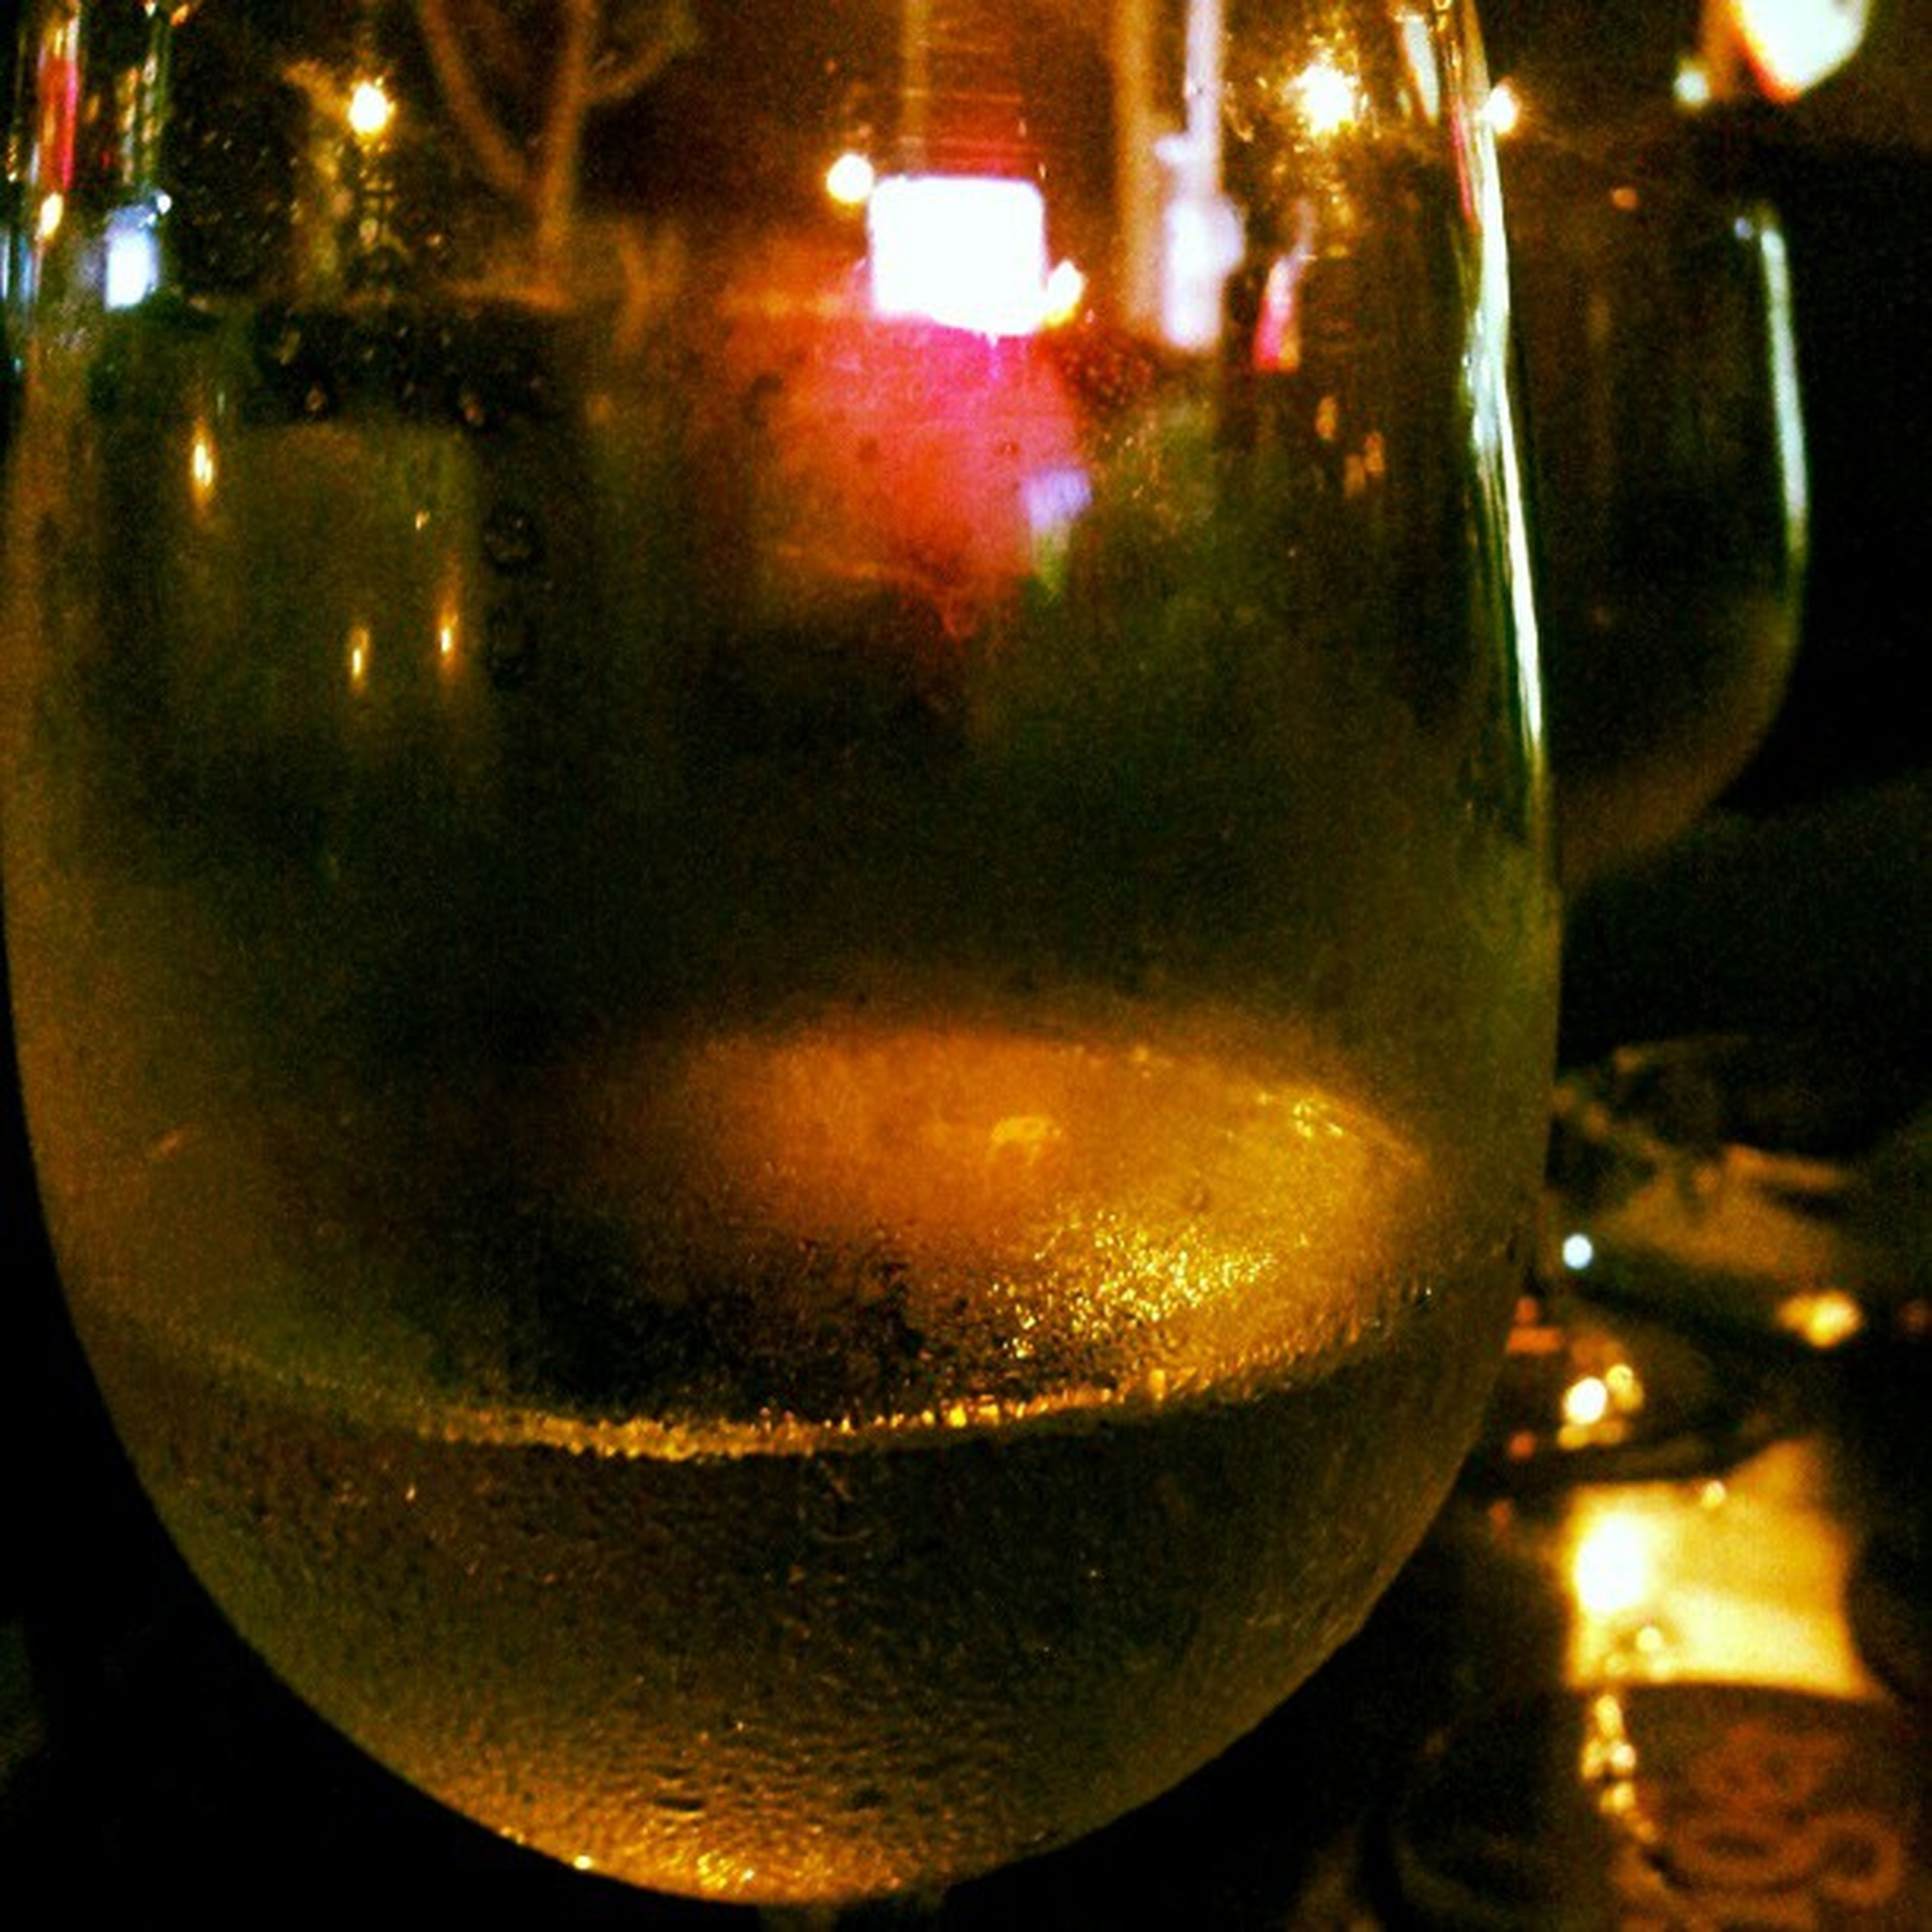 drink, food and drink, drinking glass, refreshment, indoors, glass - material, close-up, alcohol, transparent, freshness, illuminated, table, still life, focus on foreground, glass, night, wineglass, wine, no people, beer glass